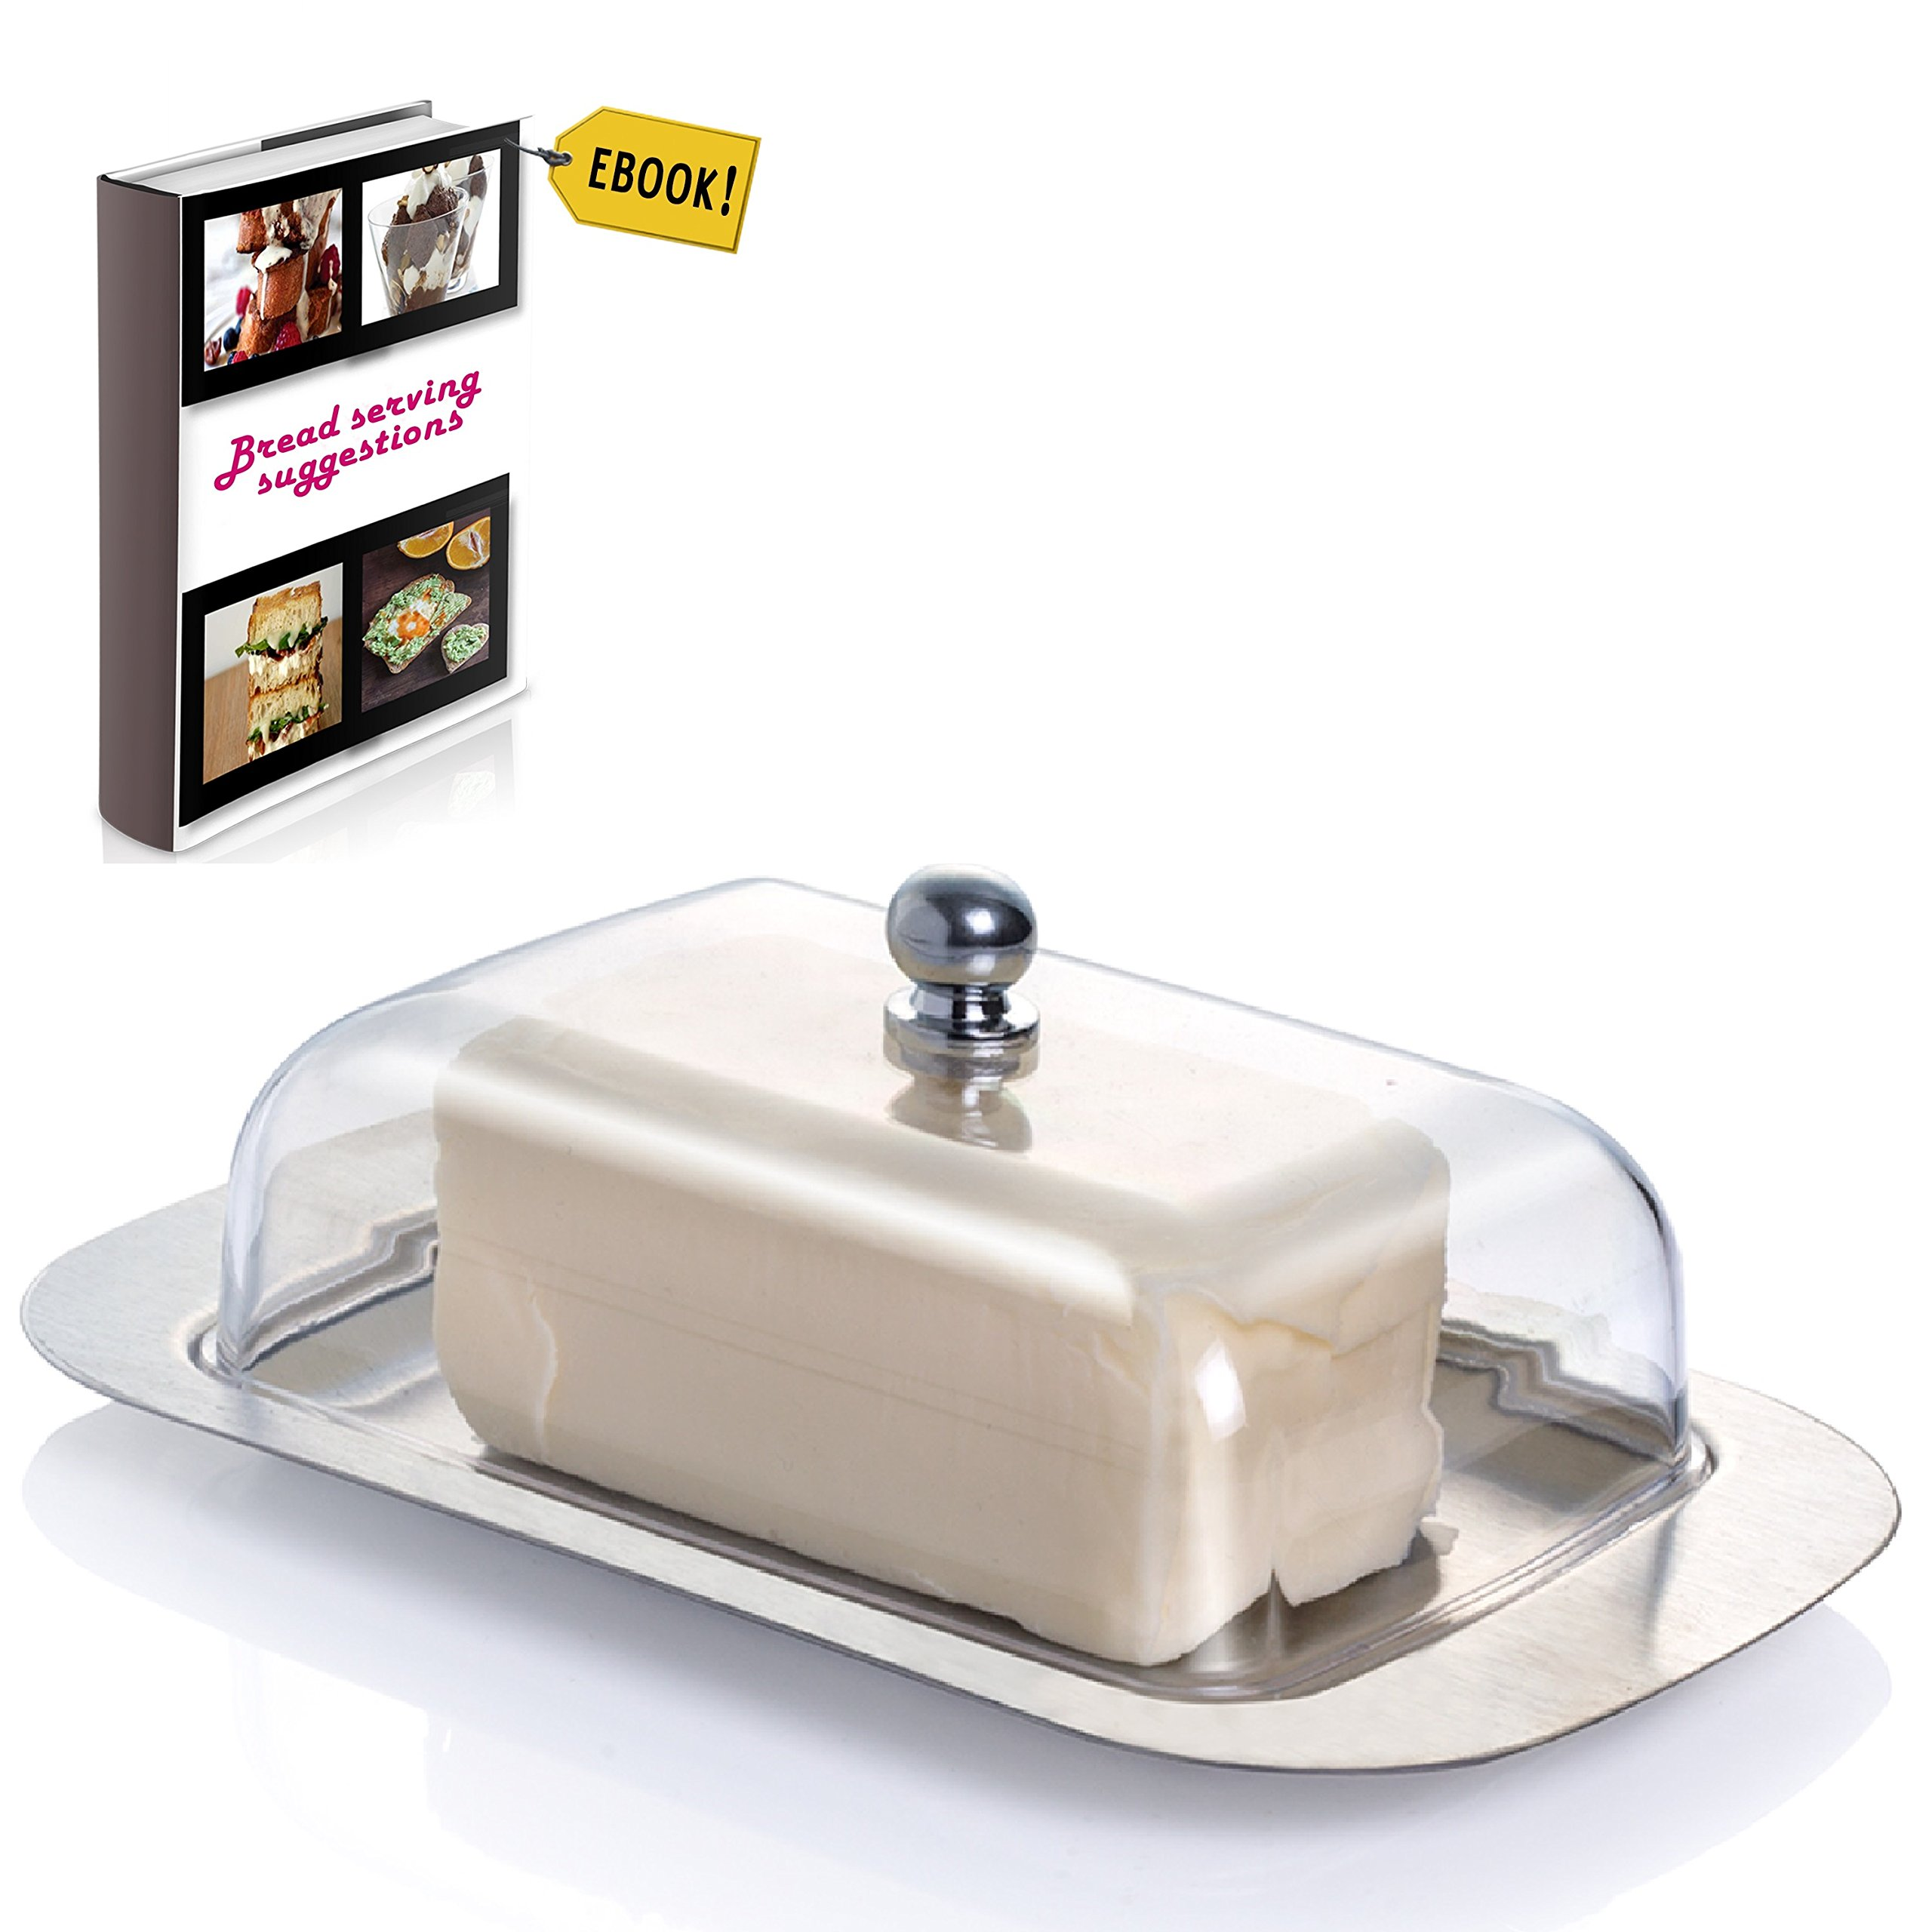 Covered Butter Dish For Kitchen - Stainless Steel Metal Saucer Clear plastic Lid + FREE Bread Serving Suggestions eBook 7.3''x4.7'' by All-Green Products